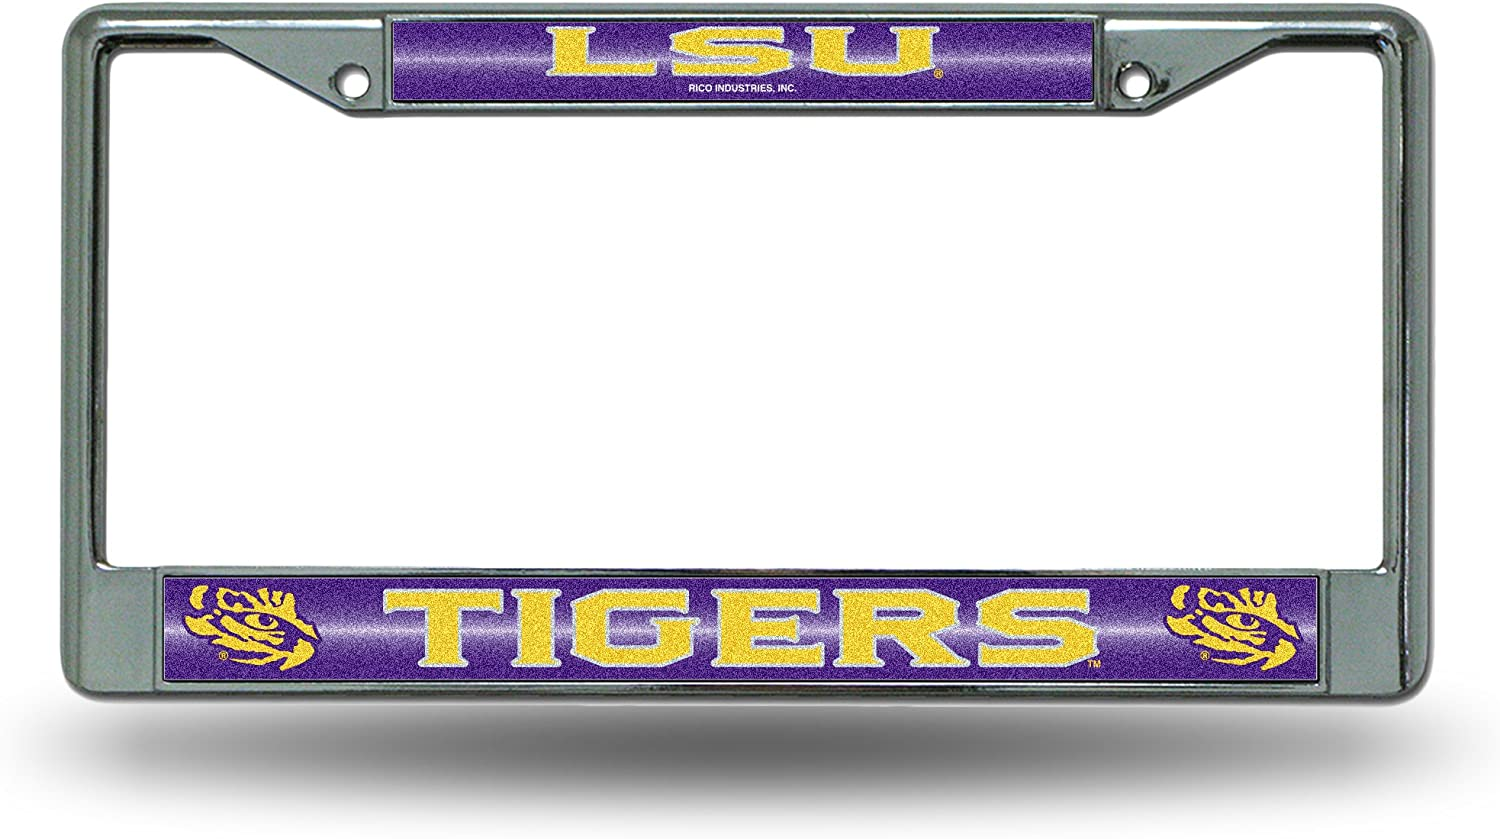 LSU Tigers NCAA Rico Industries  Bling Chrome License Plate Frame with Glitter Accent